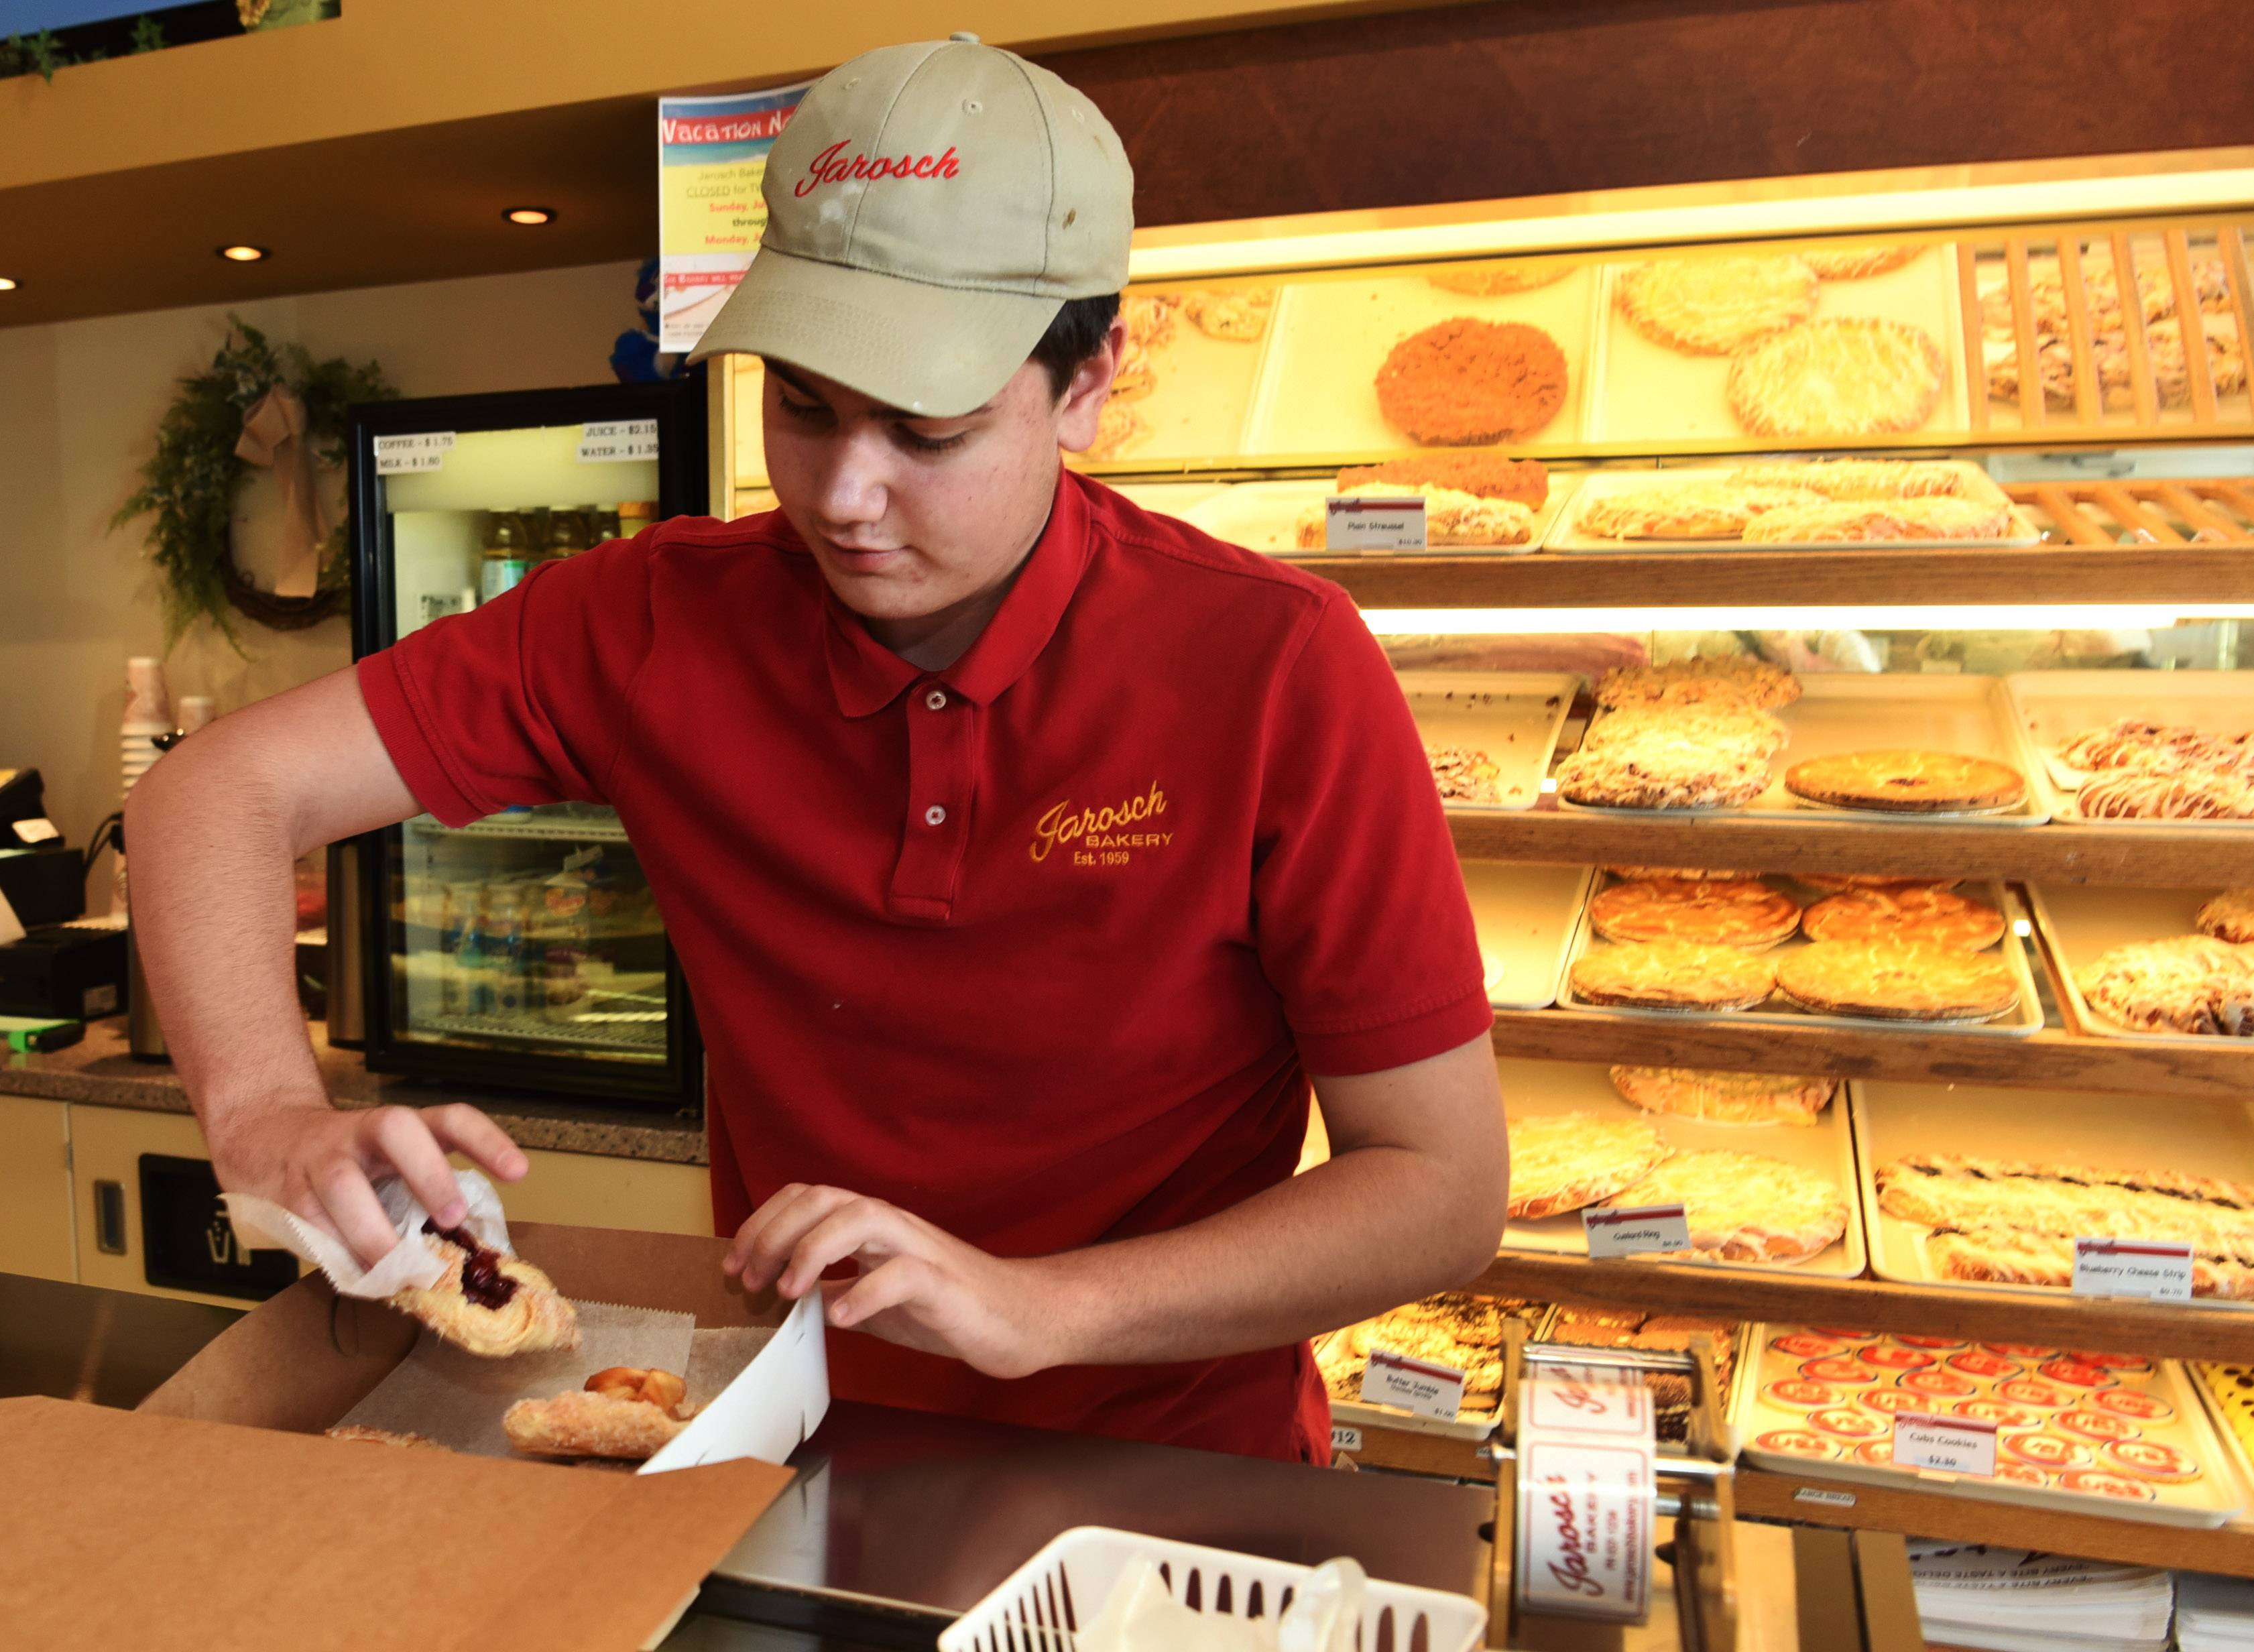 Jack Gallagher, 18, boxes pastries at Jarosch Bakery in Elk Grove Village, one of several Cook County towns to opt out of county ordinances raising the minimum wage and providing sick days.